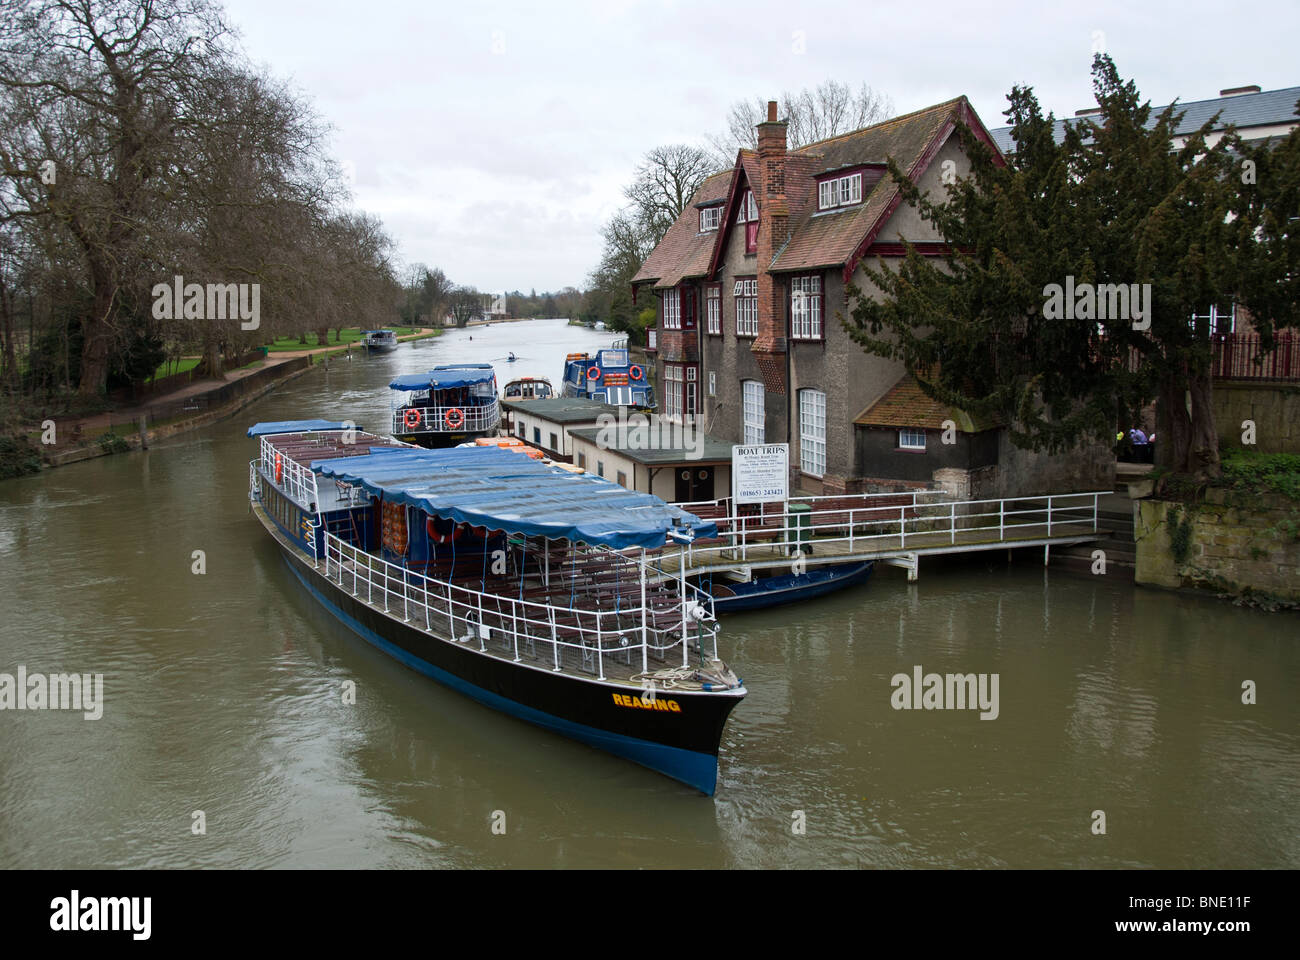 BOAT ON THE OXFORD CANAL - Stock Image